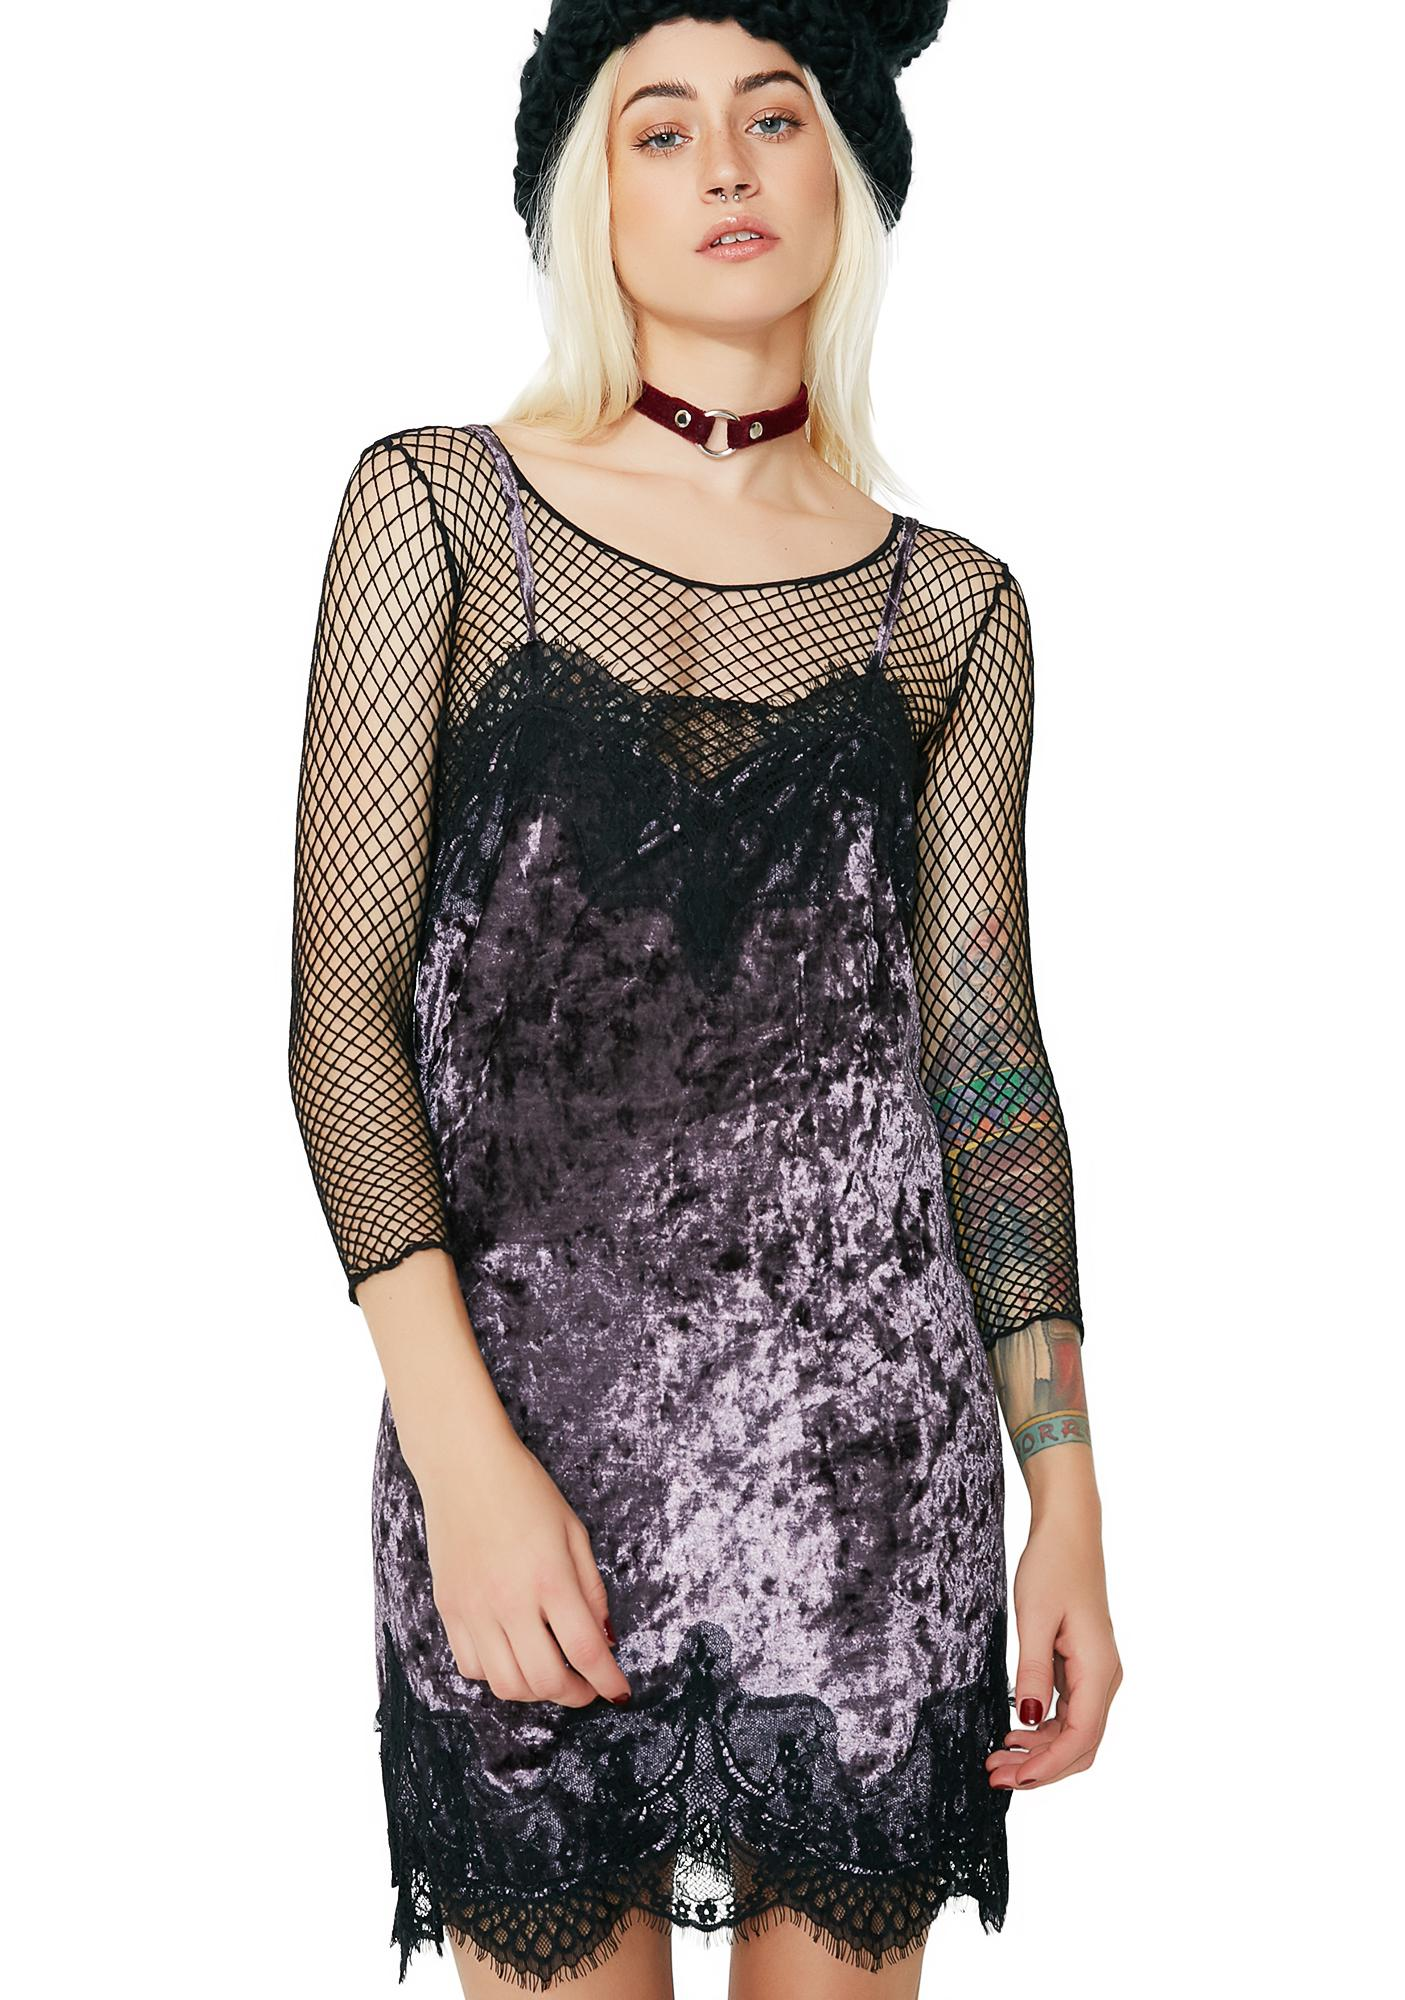 https://www.dollskill.com/lace-trim-velvet-slip-dress-purple.html